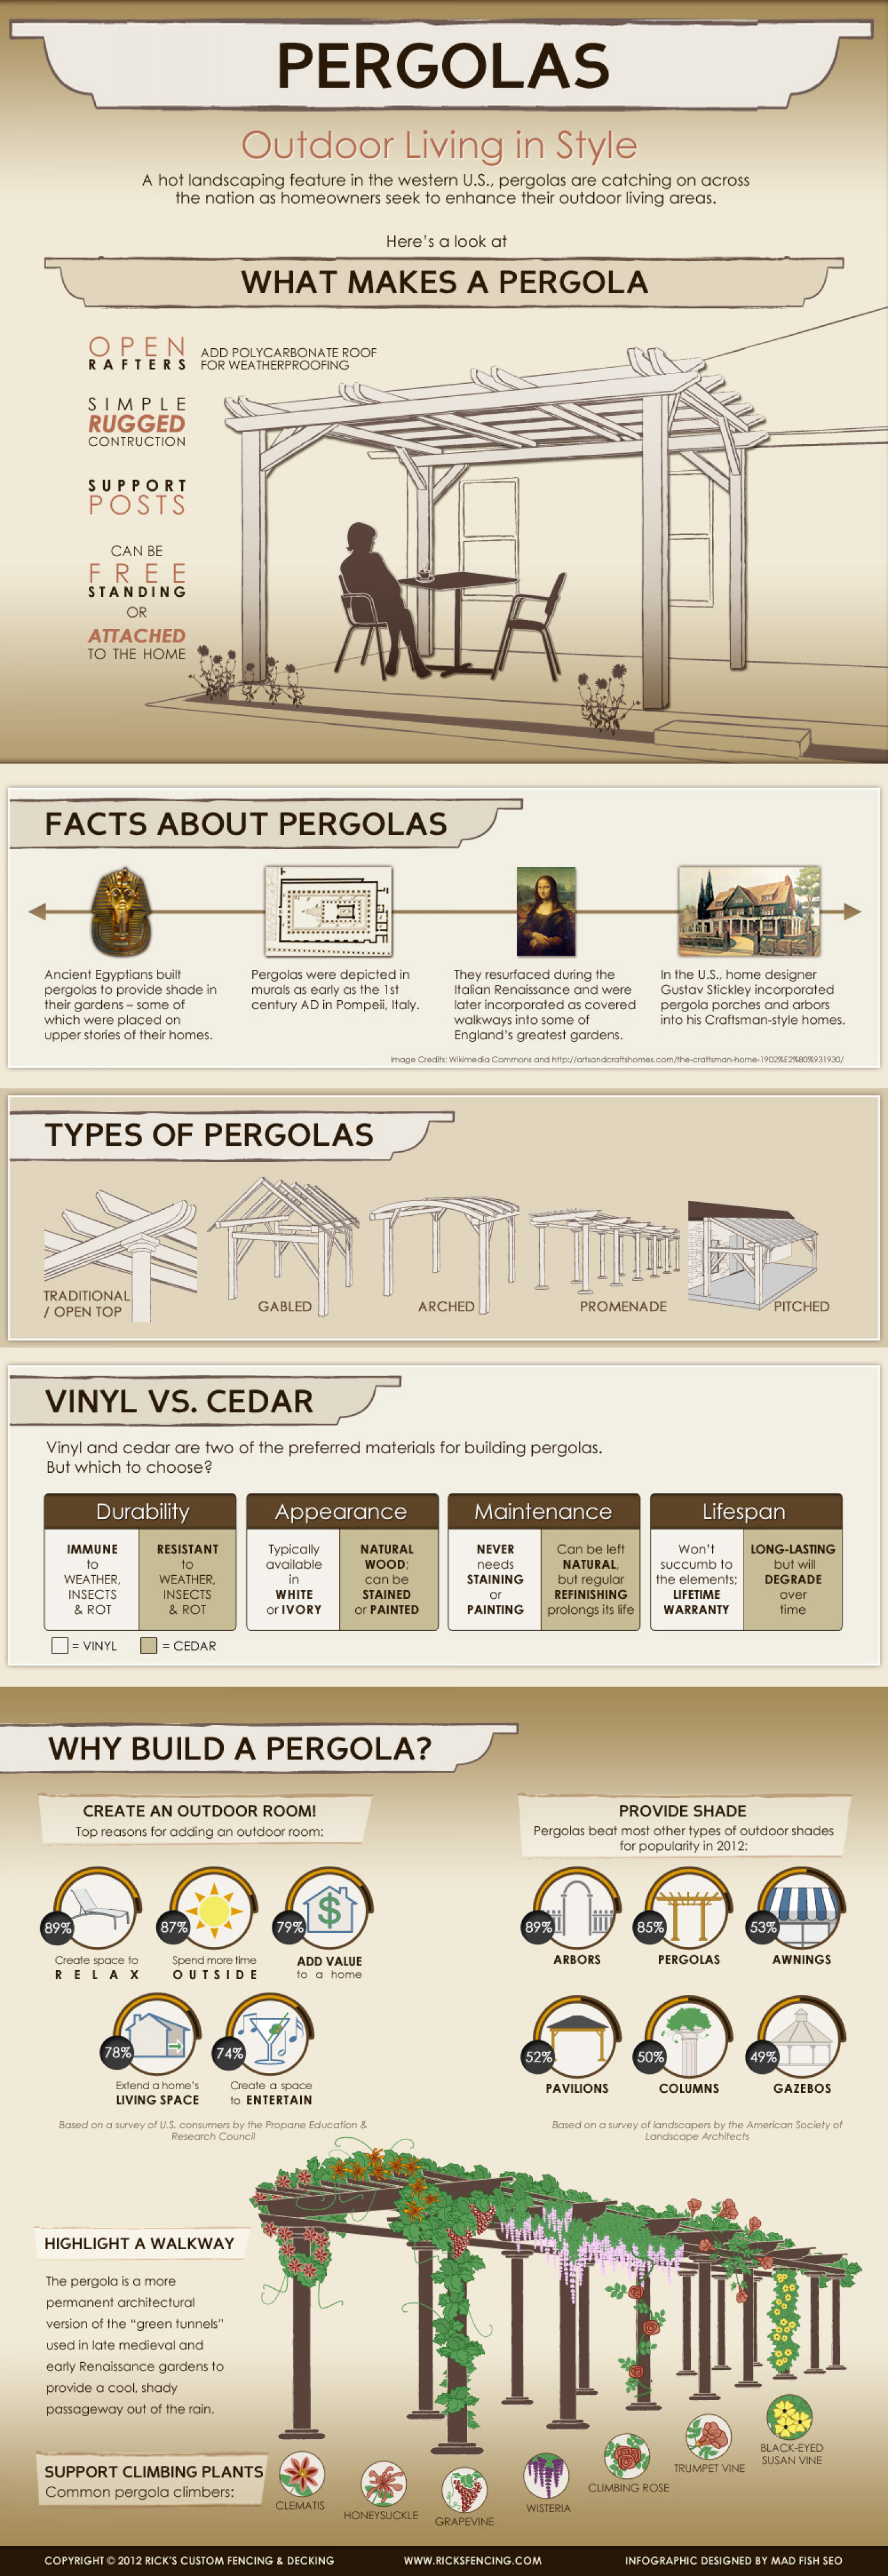 Pergolas: Outdoor Living in Style  Infographic